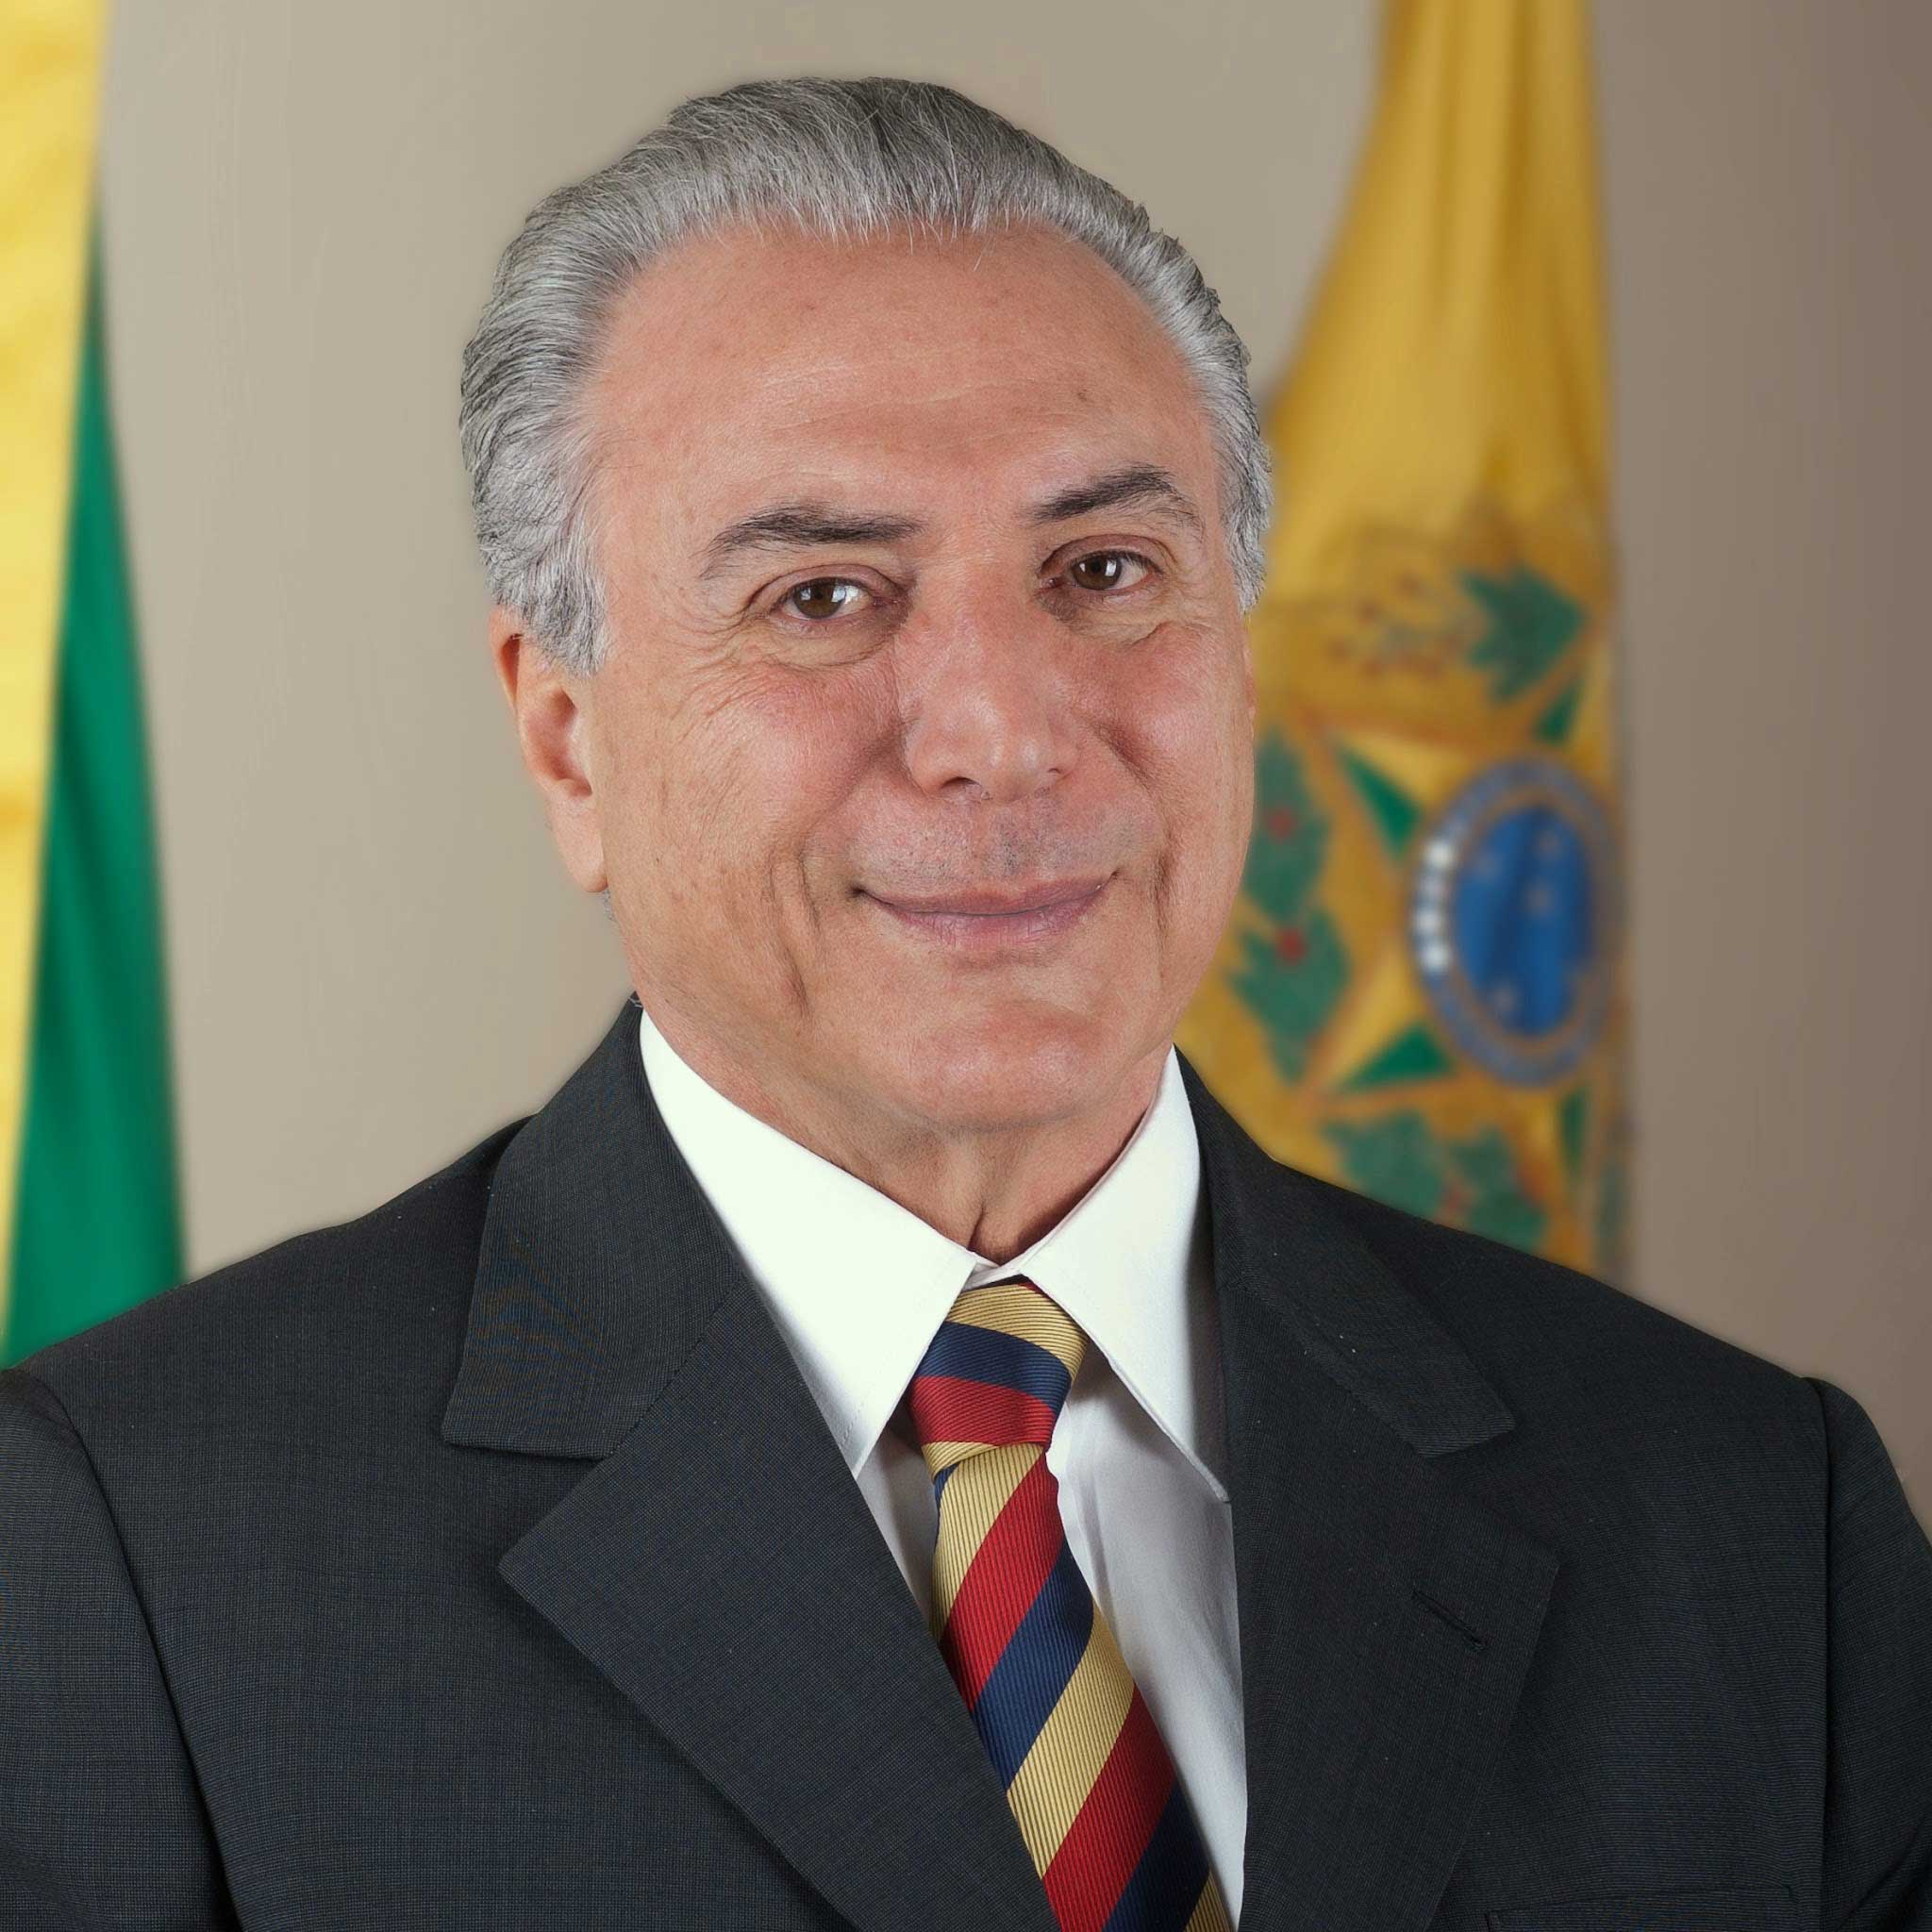 VP Michel Temer will take over as President if Rousseff is impeached